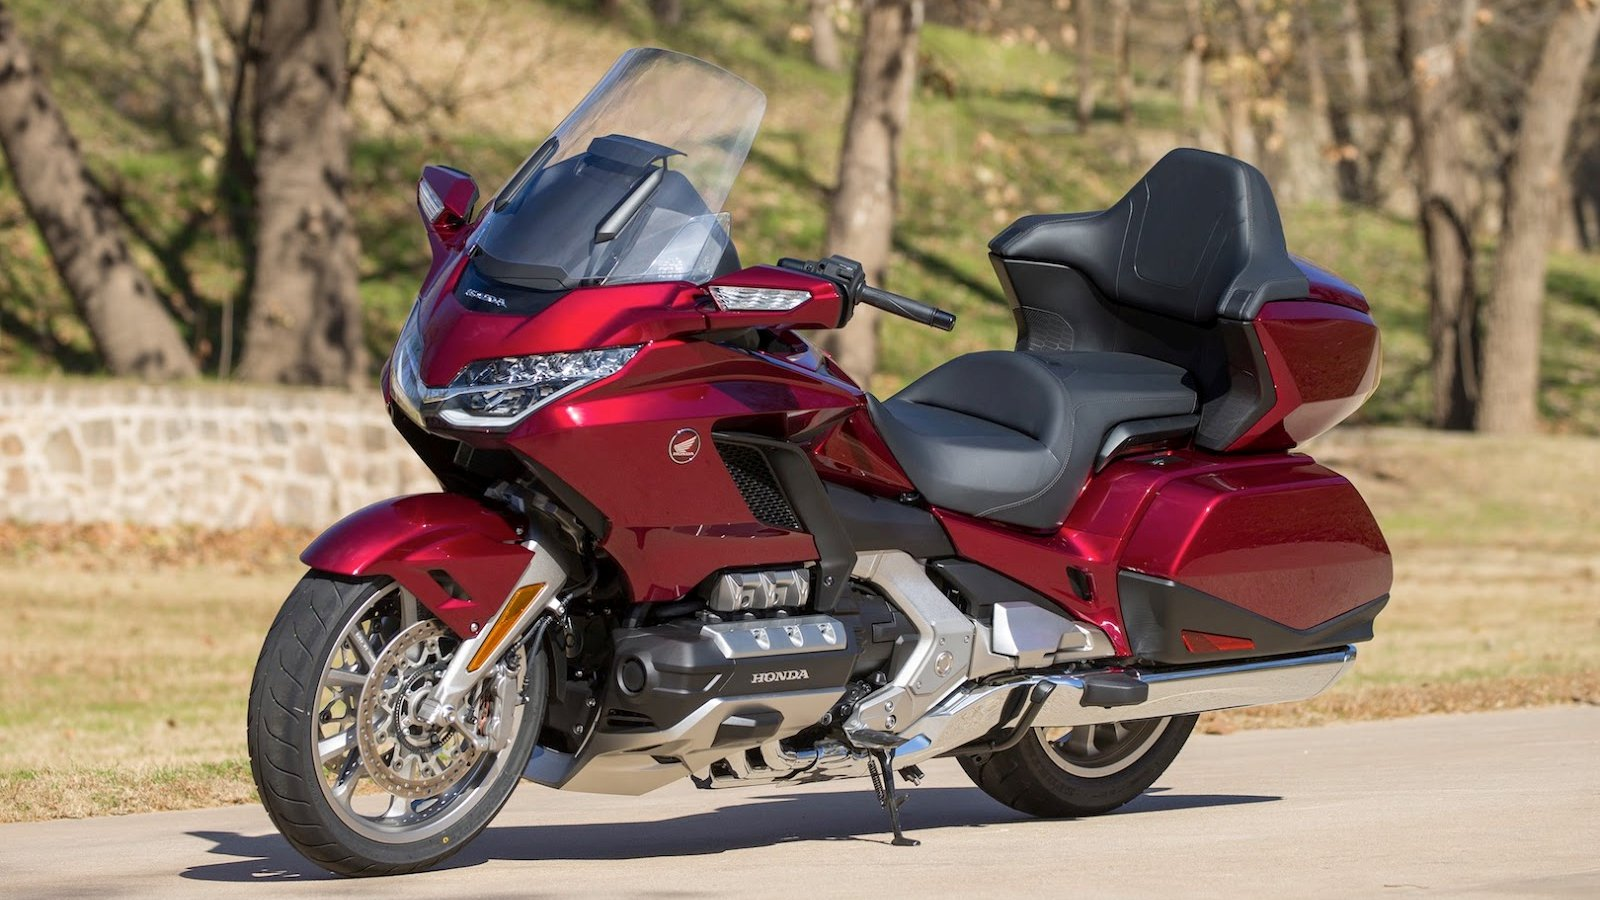 2020 Honda Goldwing Review.Complete Car Info For 87 All New 2020 Honda Gold Wing Rumors